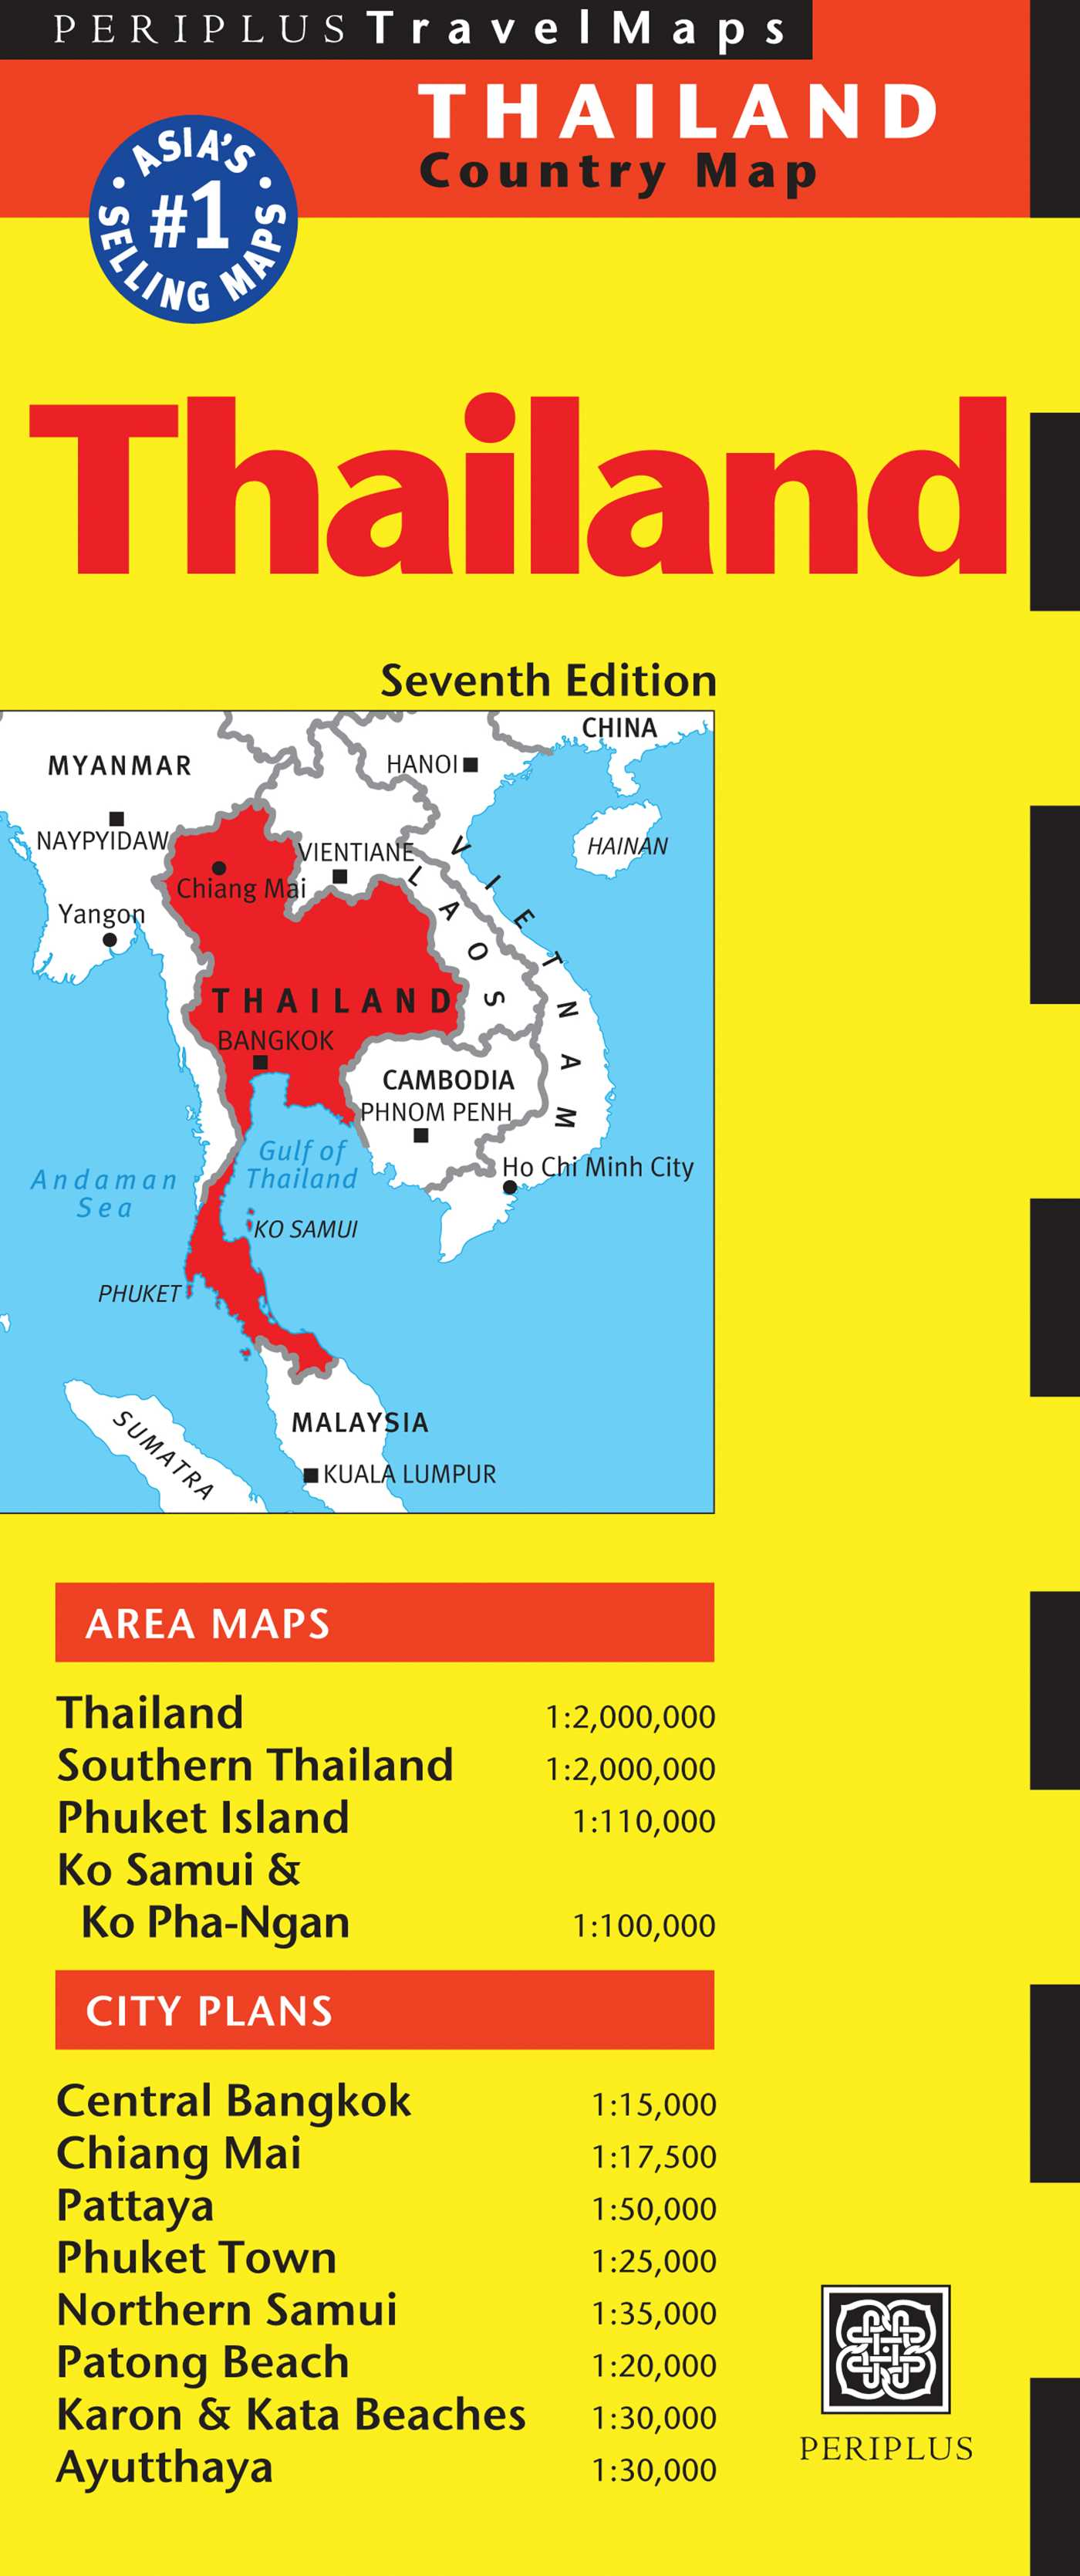 Thailand-travel-map-seventh-edition-9780794607081_hr